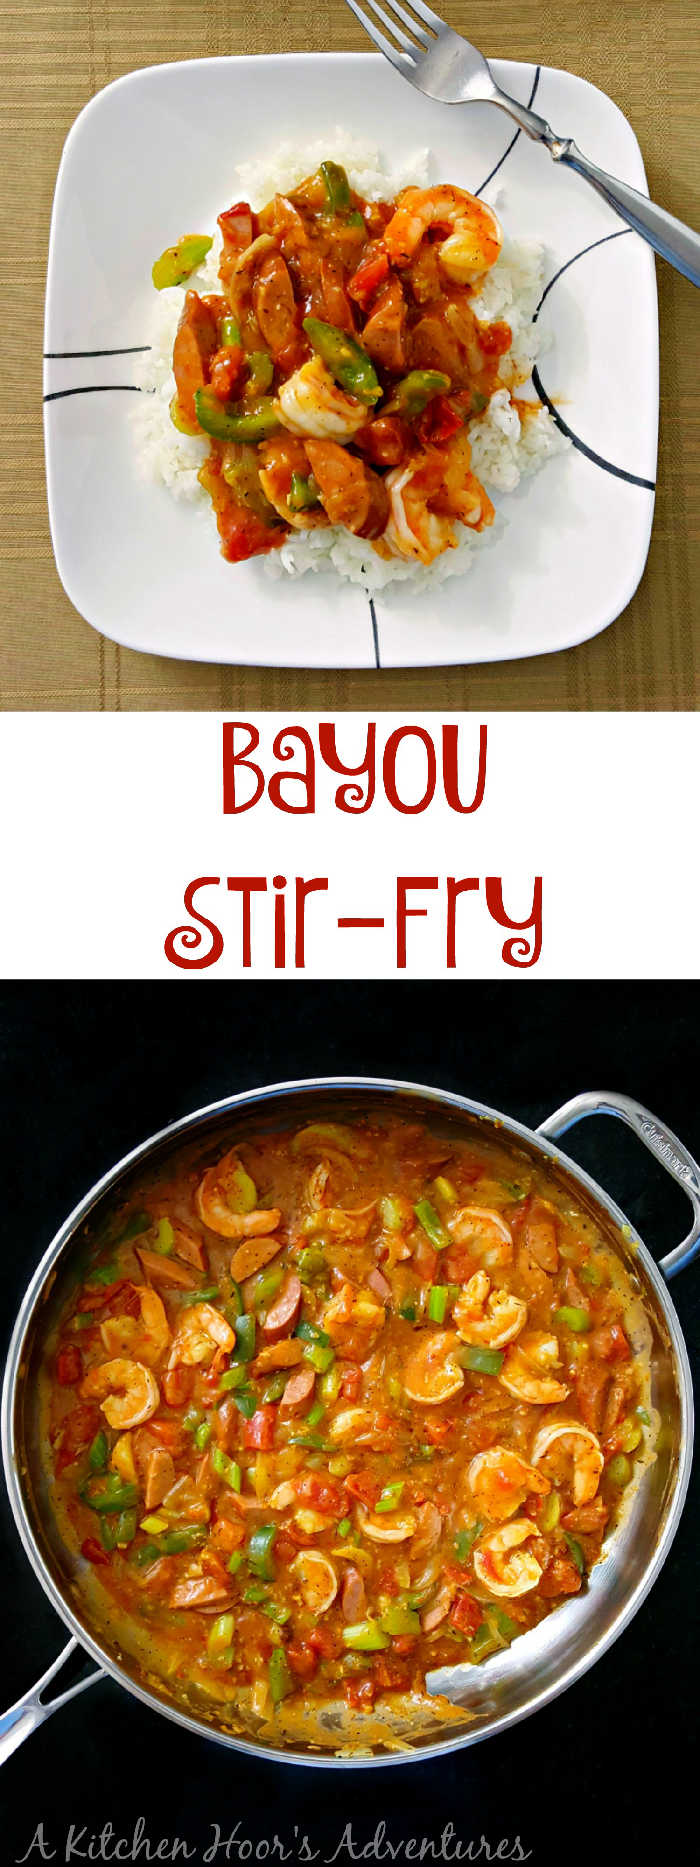 Tender shrimp are sautéed with kielbasa and vegetables and served up like a stir-fry with a delicious sauce and fragrant rice. Bayou Stir-Fry has Cajun spice with a rich stir-fry style sauce.